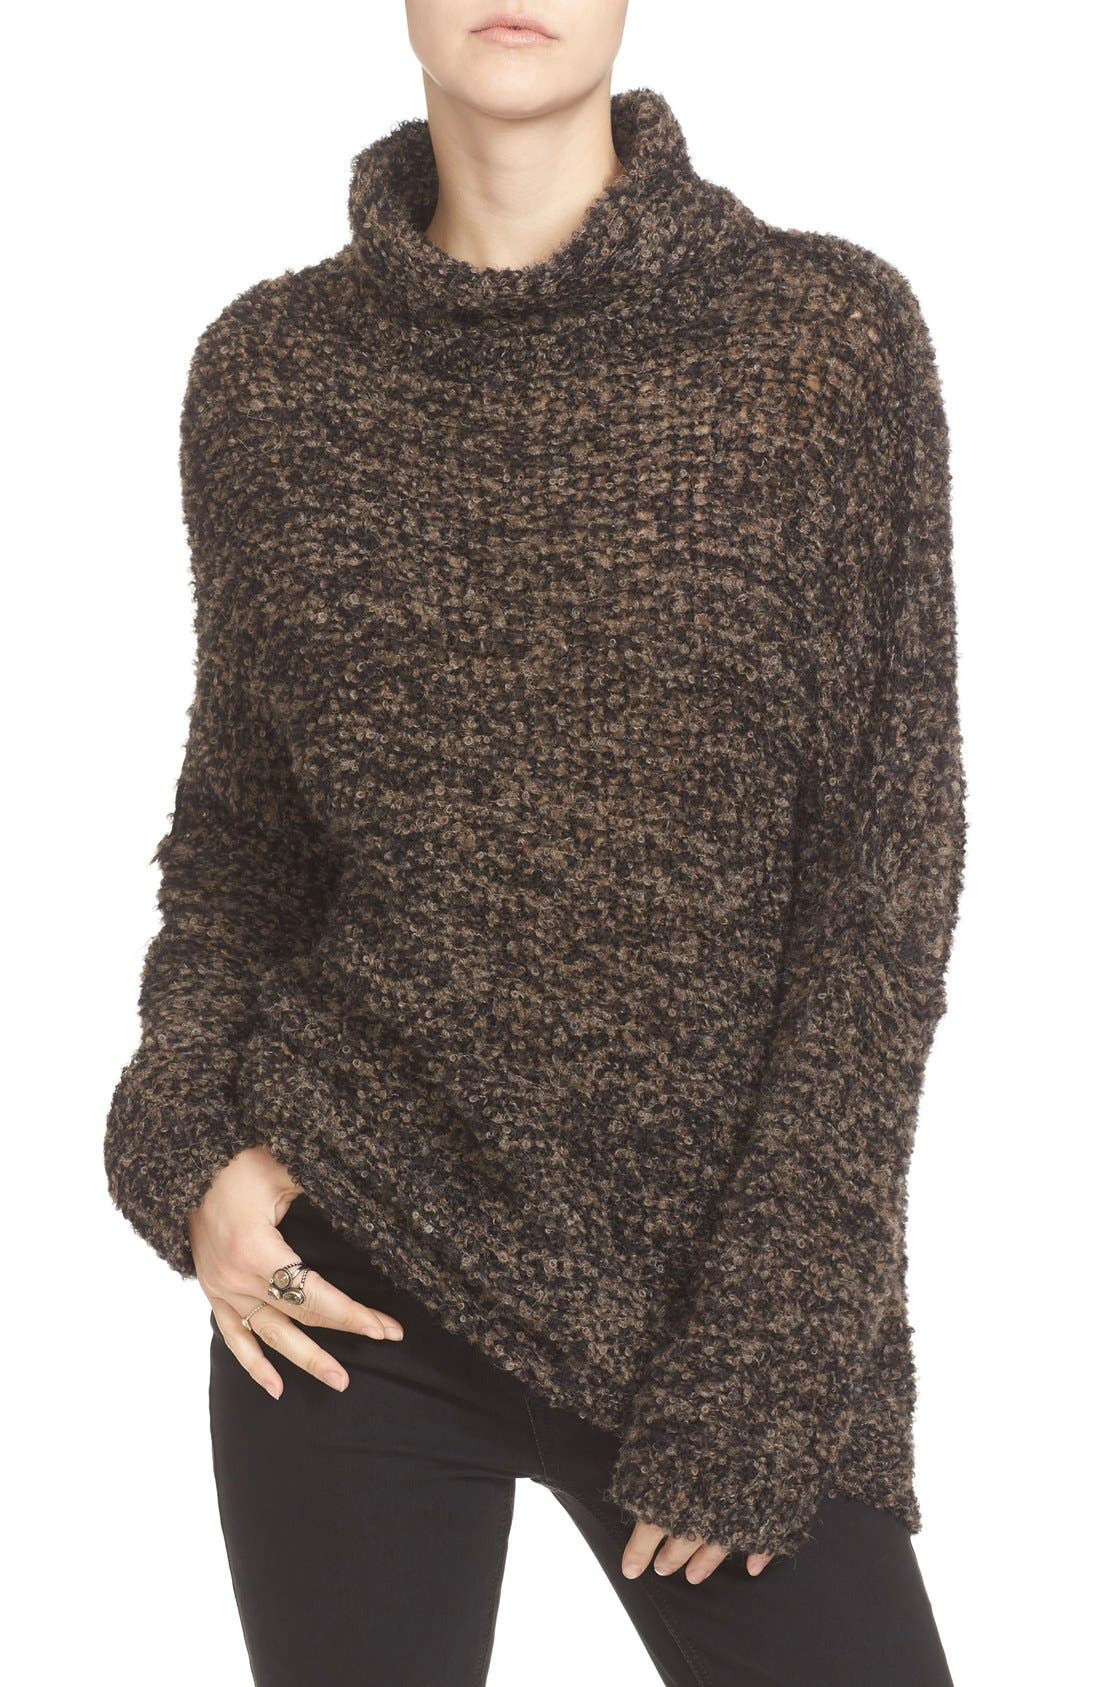 'She's All That' Knit Turtleneck Sweater,                             Main thumbnail 1, color,                             Black